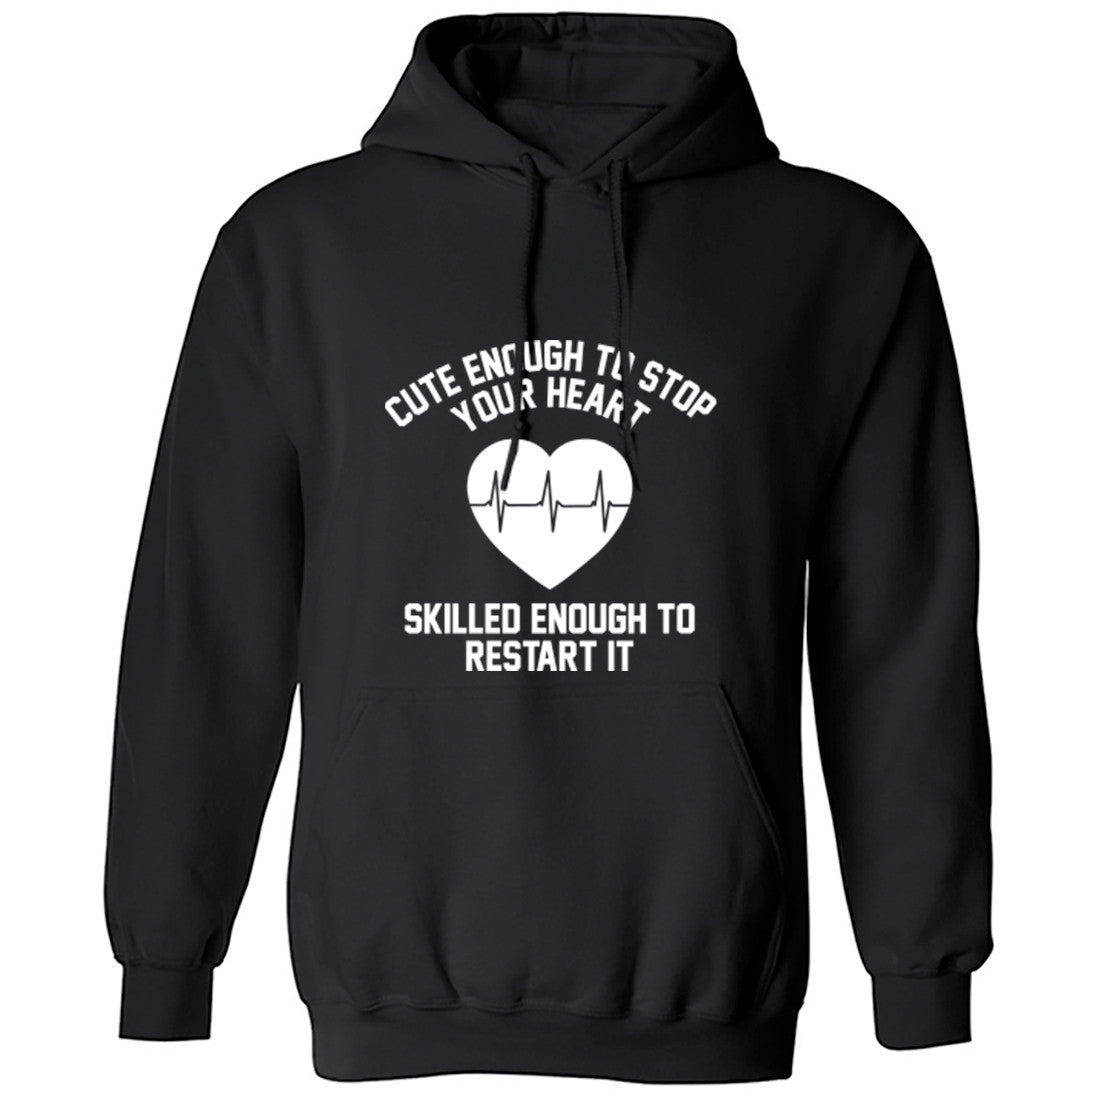 Cute Enough To Stop Your Heart Skilled Enough To Restart It Unisex Hoodie K0202 - Illustrated Identity Ltd.